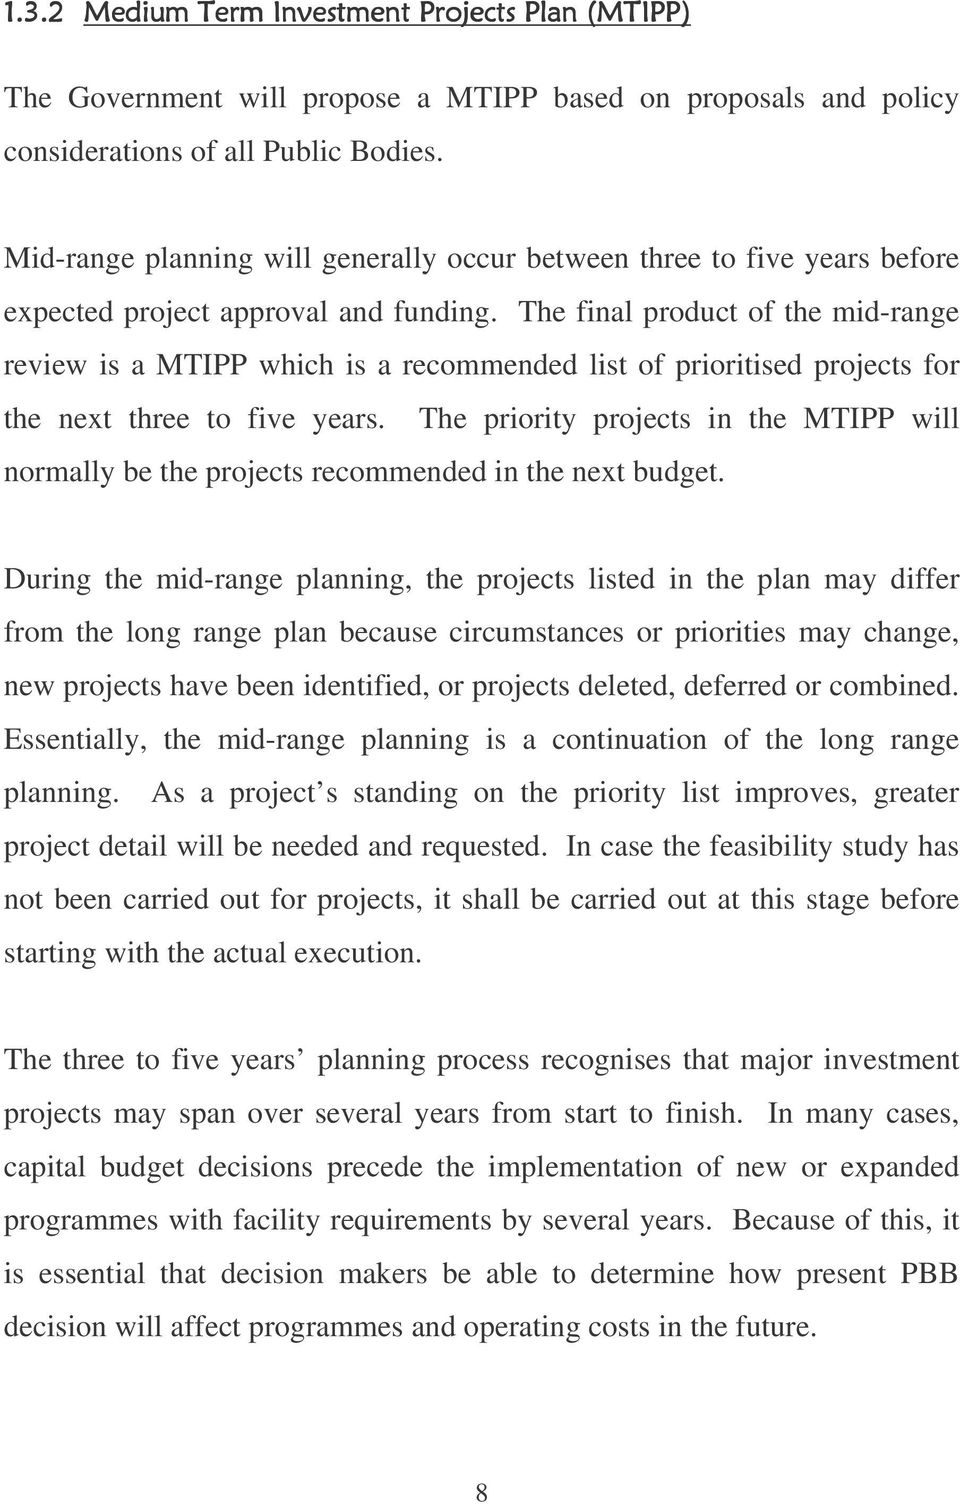 The final product of the mid-range review is a MTIPP which is a recommended list of prioritised projects for the next three to five years.